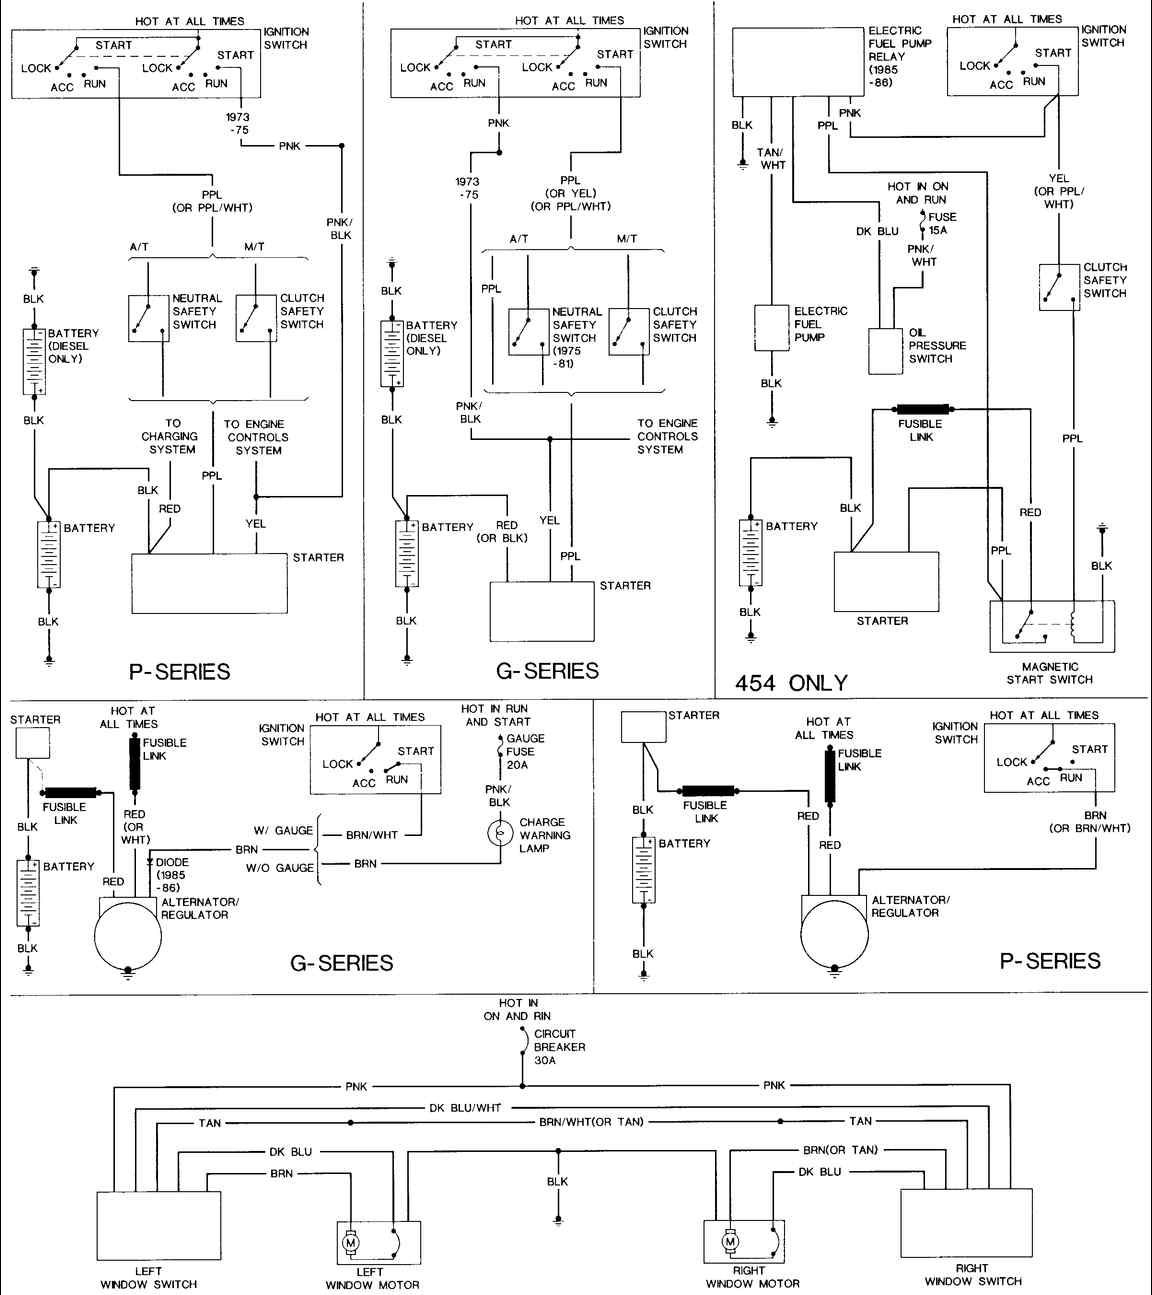 0c73623a181dc376dbb4777e2029d285 85 chevy truck wiring diagram 85 chevy van the steering column 1996 chevy s10 steering column wiring diagram at gsmx.co